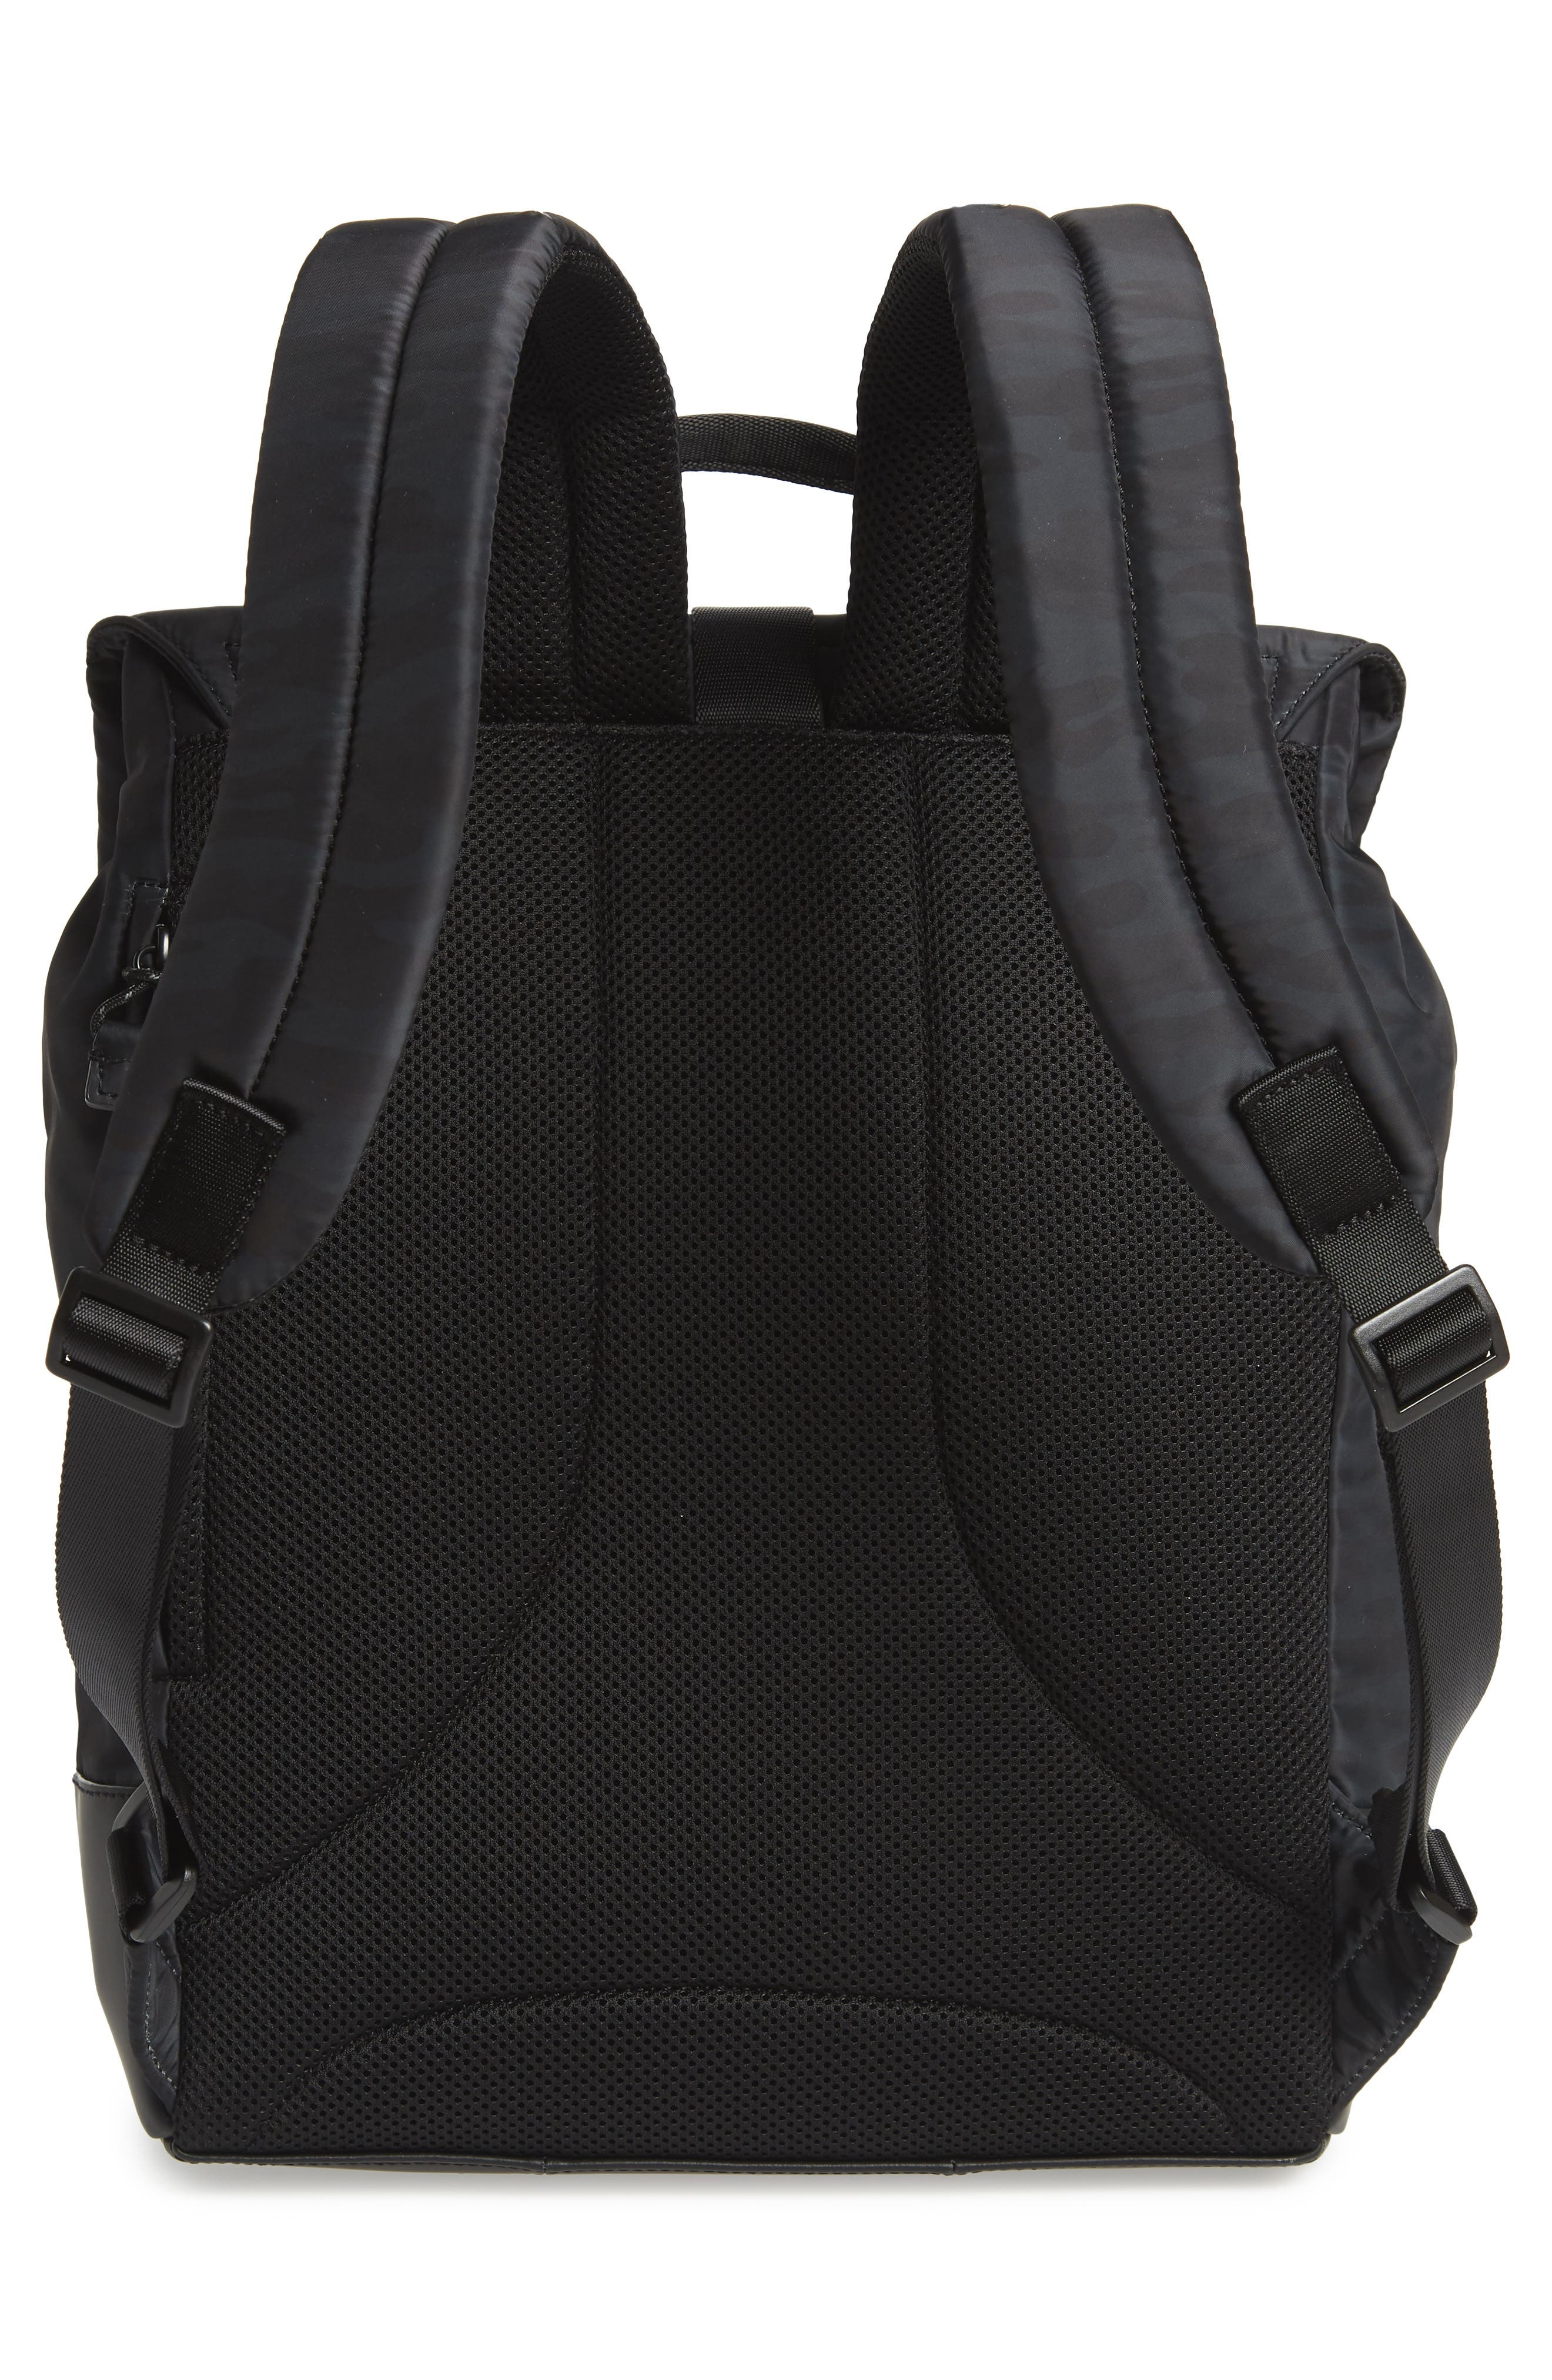 COLE HAAN, Sawyer Laptop Backpack, Alternate thumbnail 3, color, CAMO